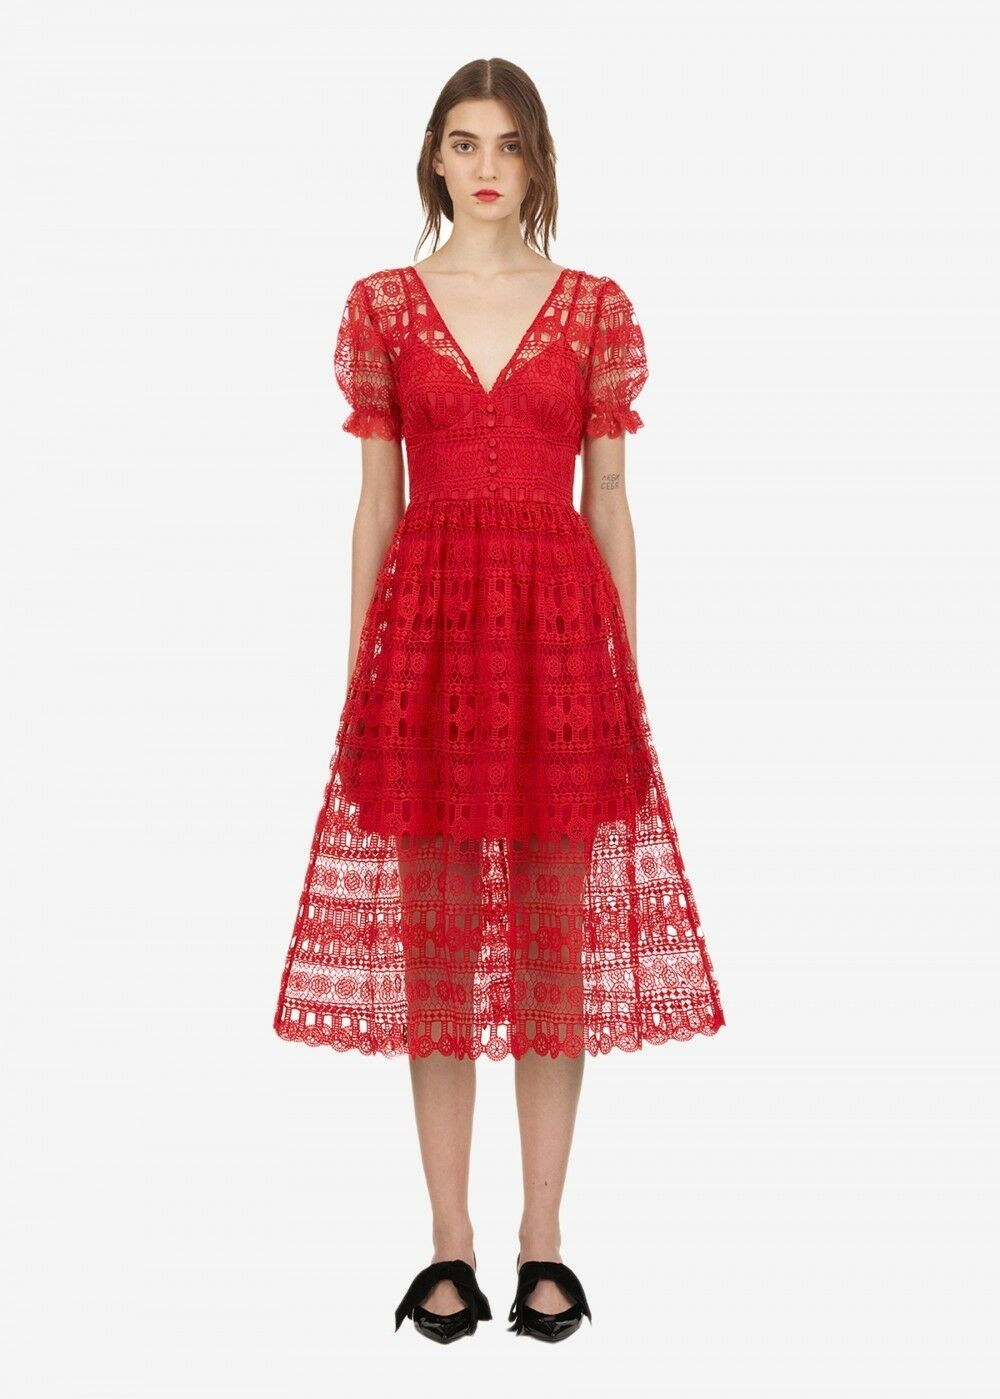 Self Portrait Red Lace Dress Us 8 Eu 40